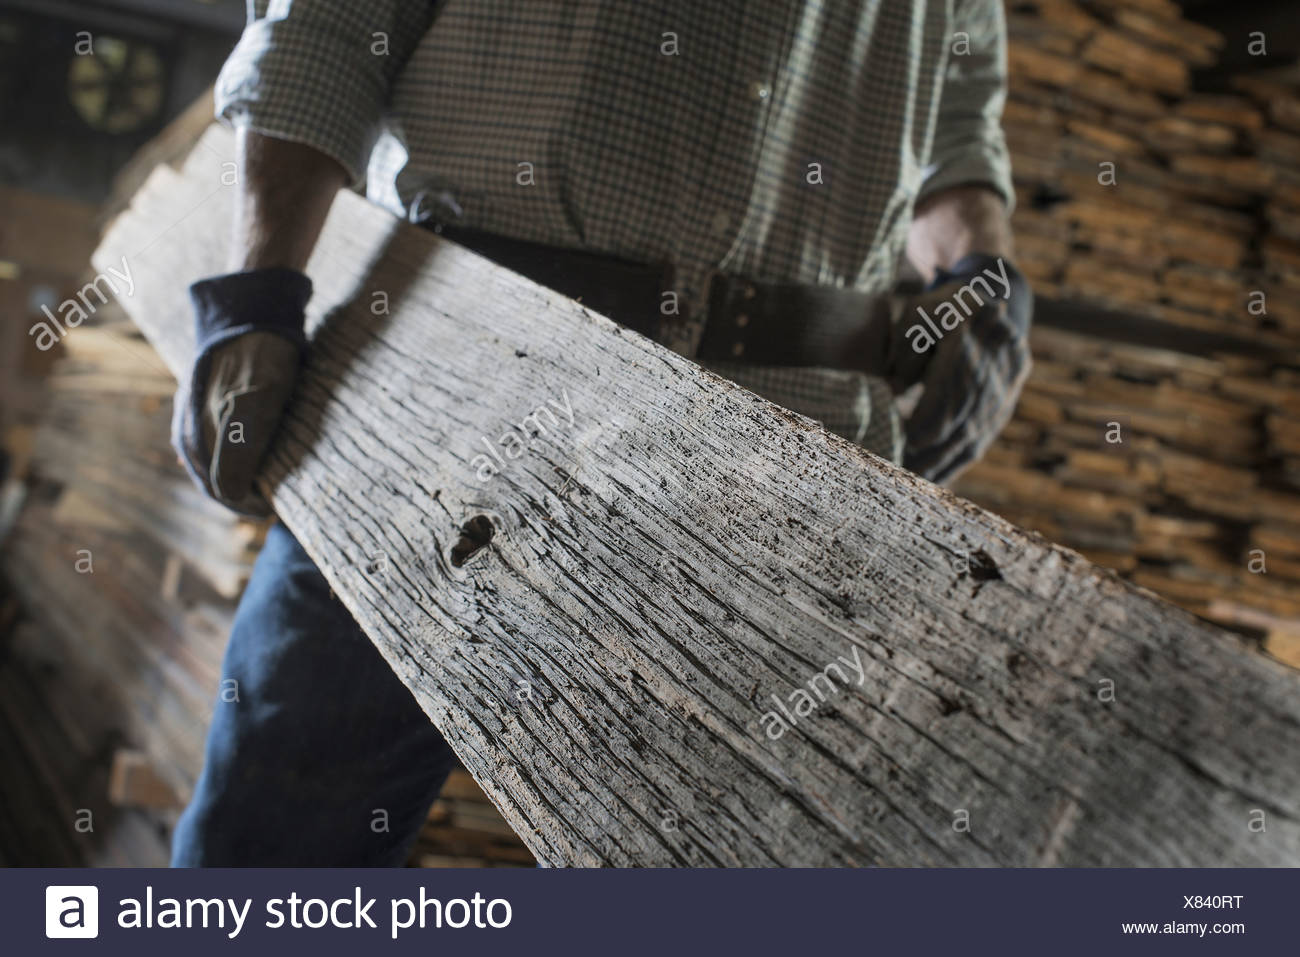 A heap of recycled reclaimed timber planks of wood Environment A man carrying a large plank of mature weathered wood - Stock Image